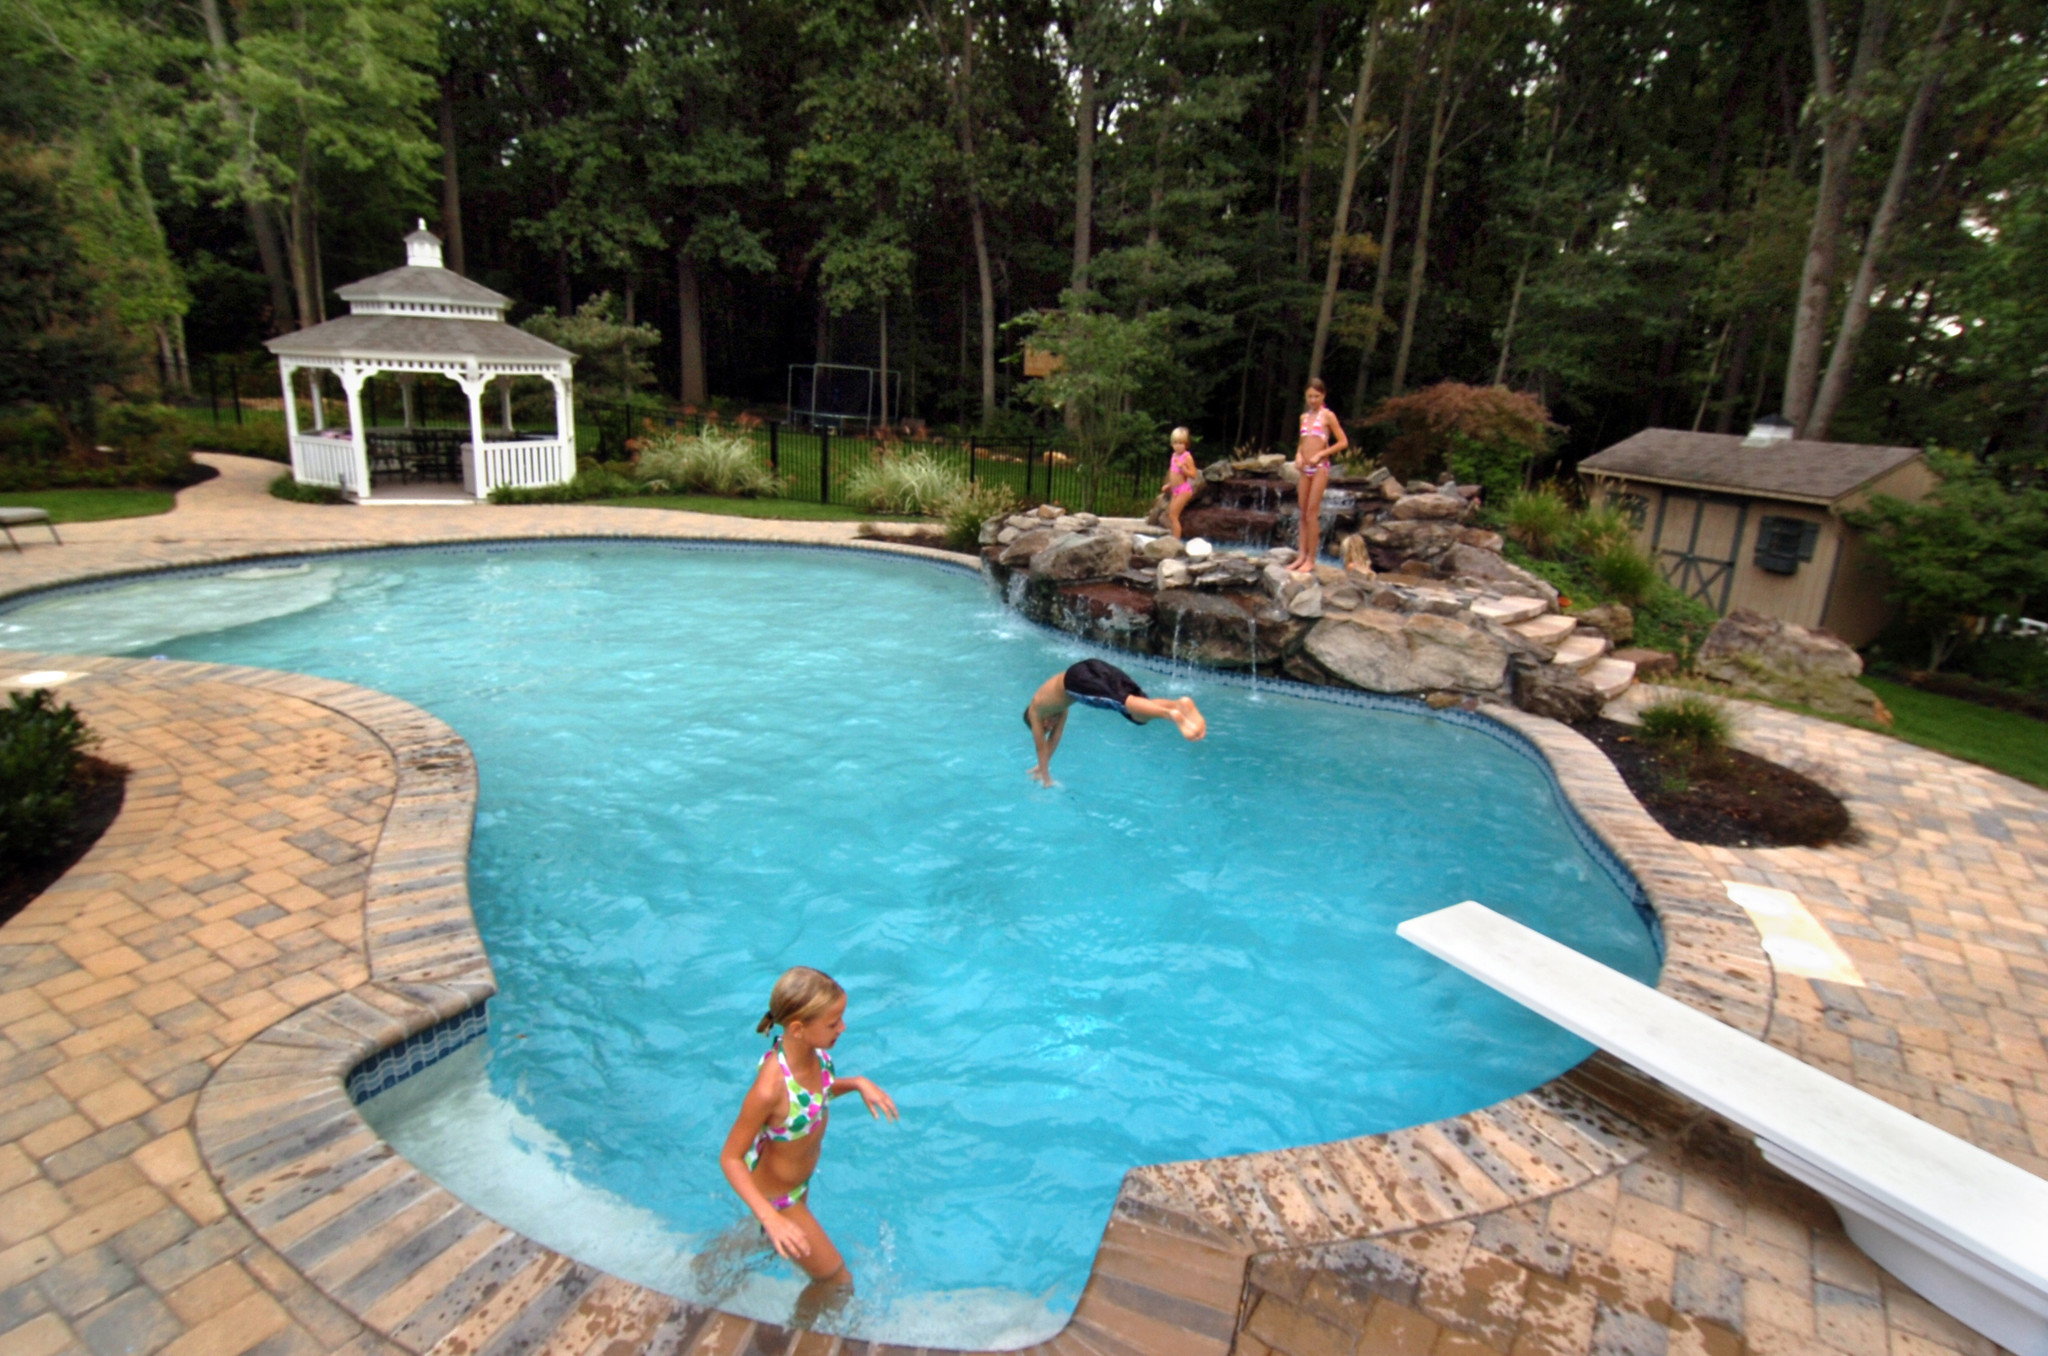 Pool supplier namco closing four md locations baltimore sun for Namco pools